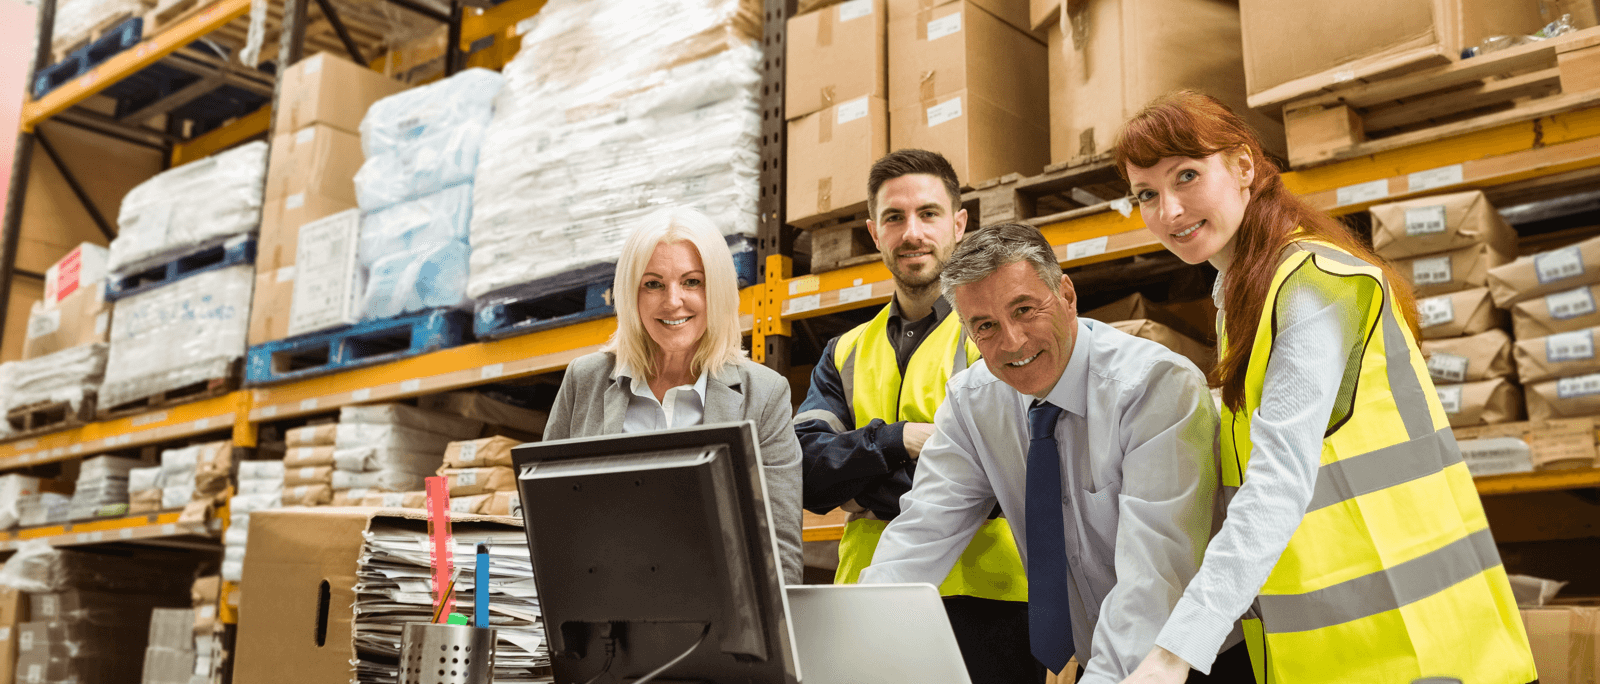 List of 14 Different Warehouse Job Positions